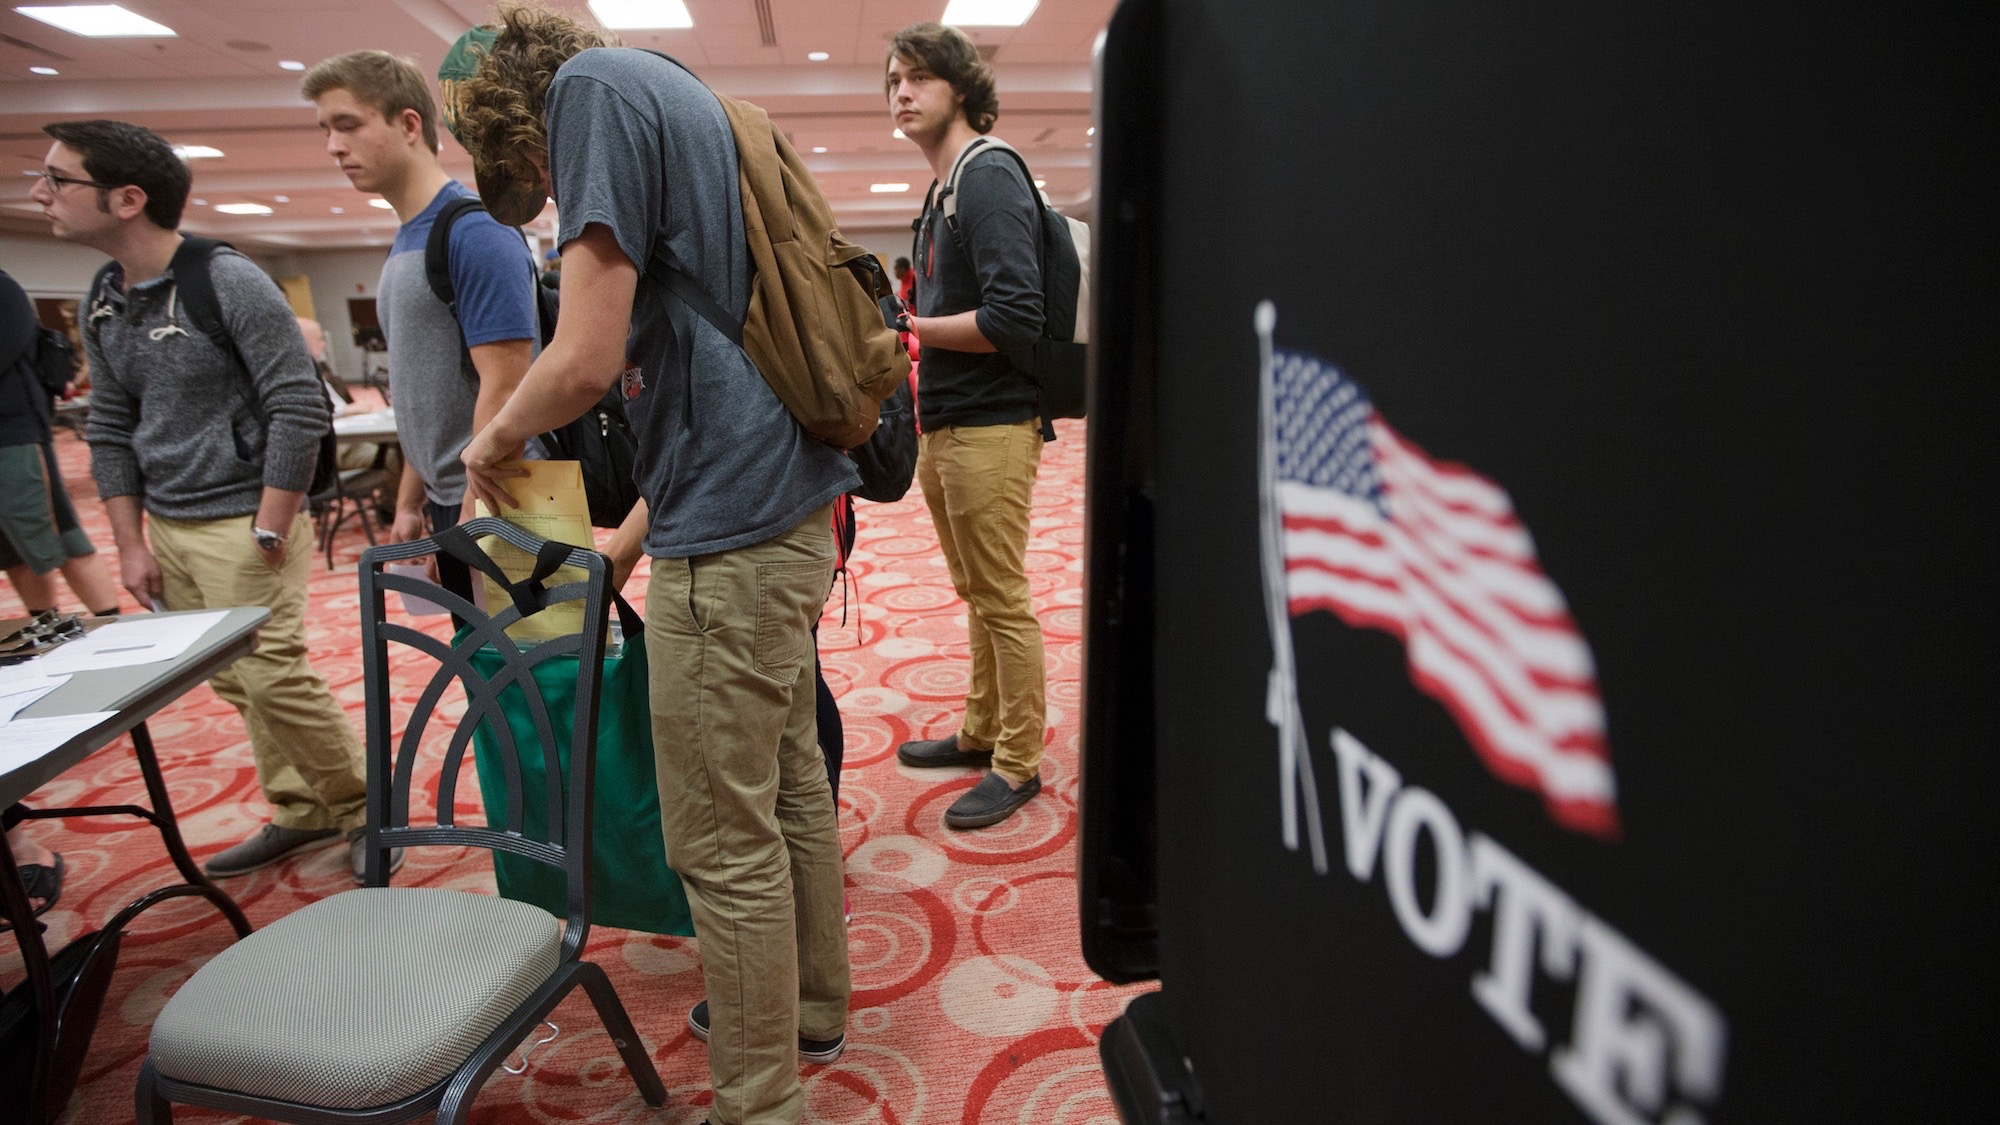 A voter places his ballot in a bag to be counted at a polling station at The Ohio State University student union, Tuesday, Nov. 3, 2015, in Columbus, Ohio. Ohio voters headed to the polls today to decide whether to allow marijuana to be grown, processed and consumed within the state's borders. (AP Photo/John Minchillo)